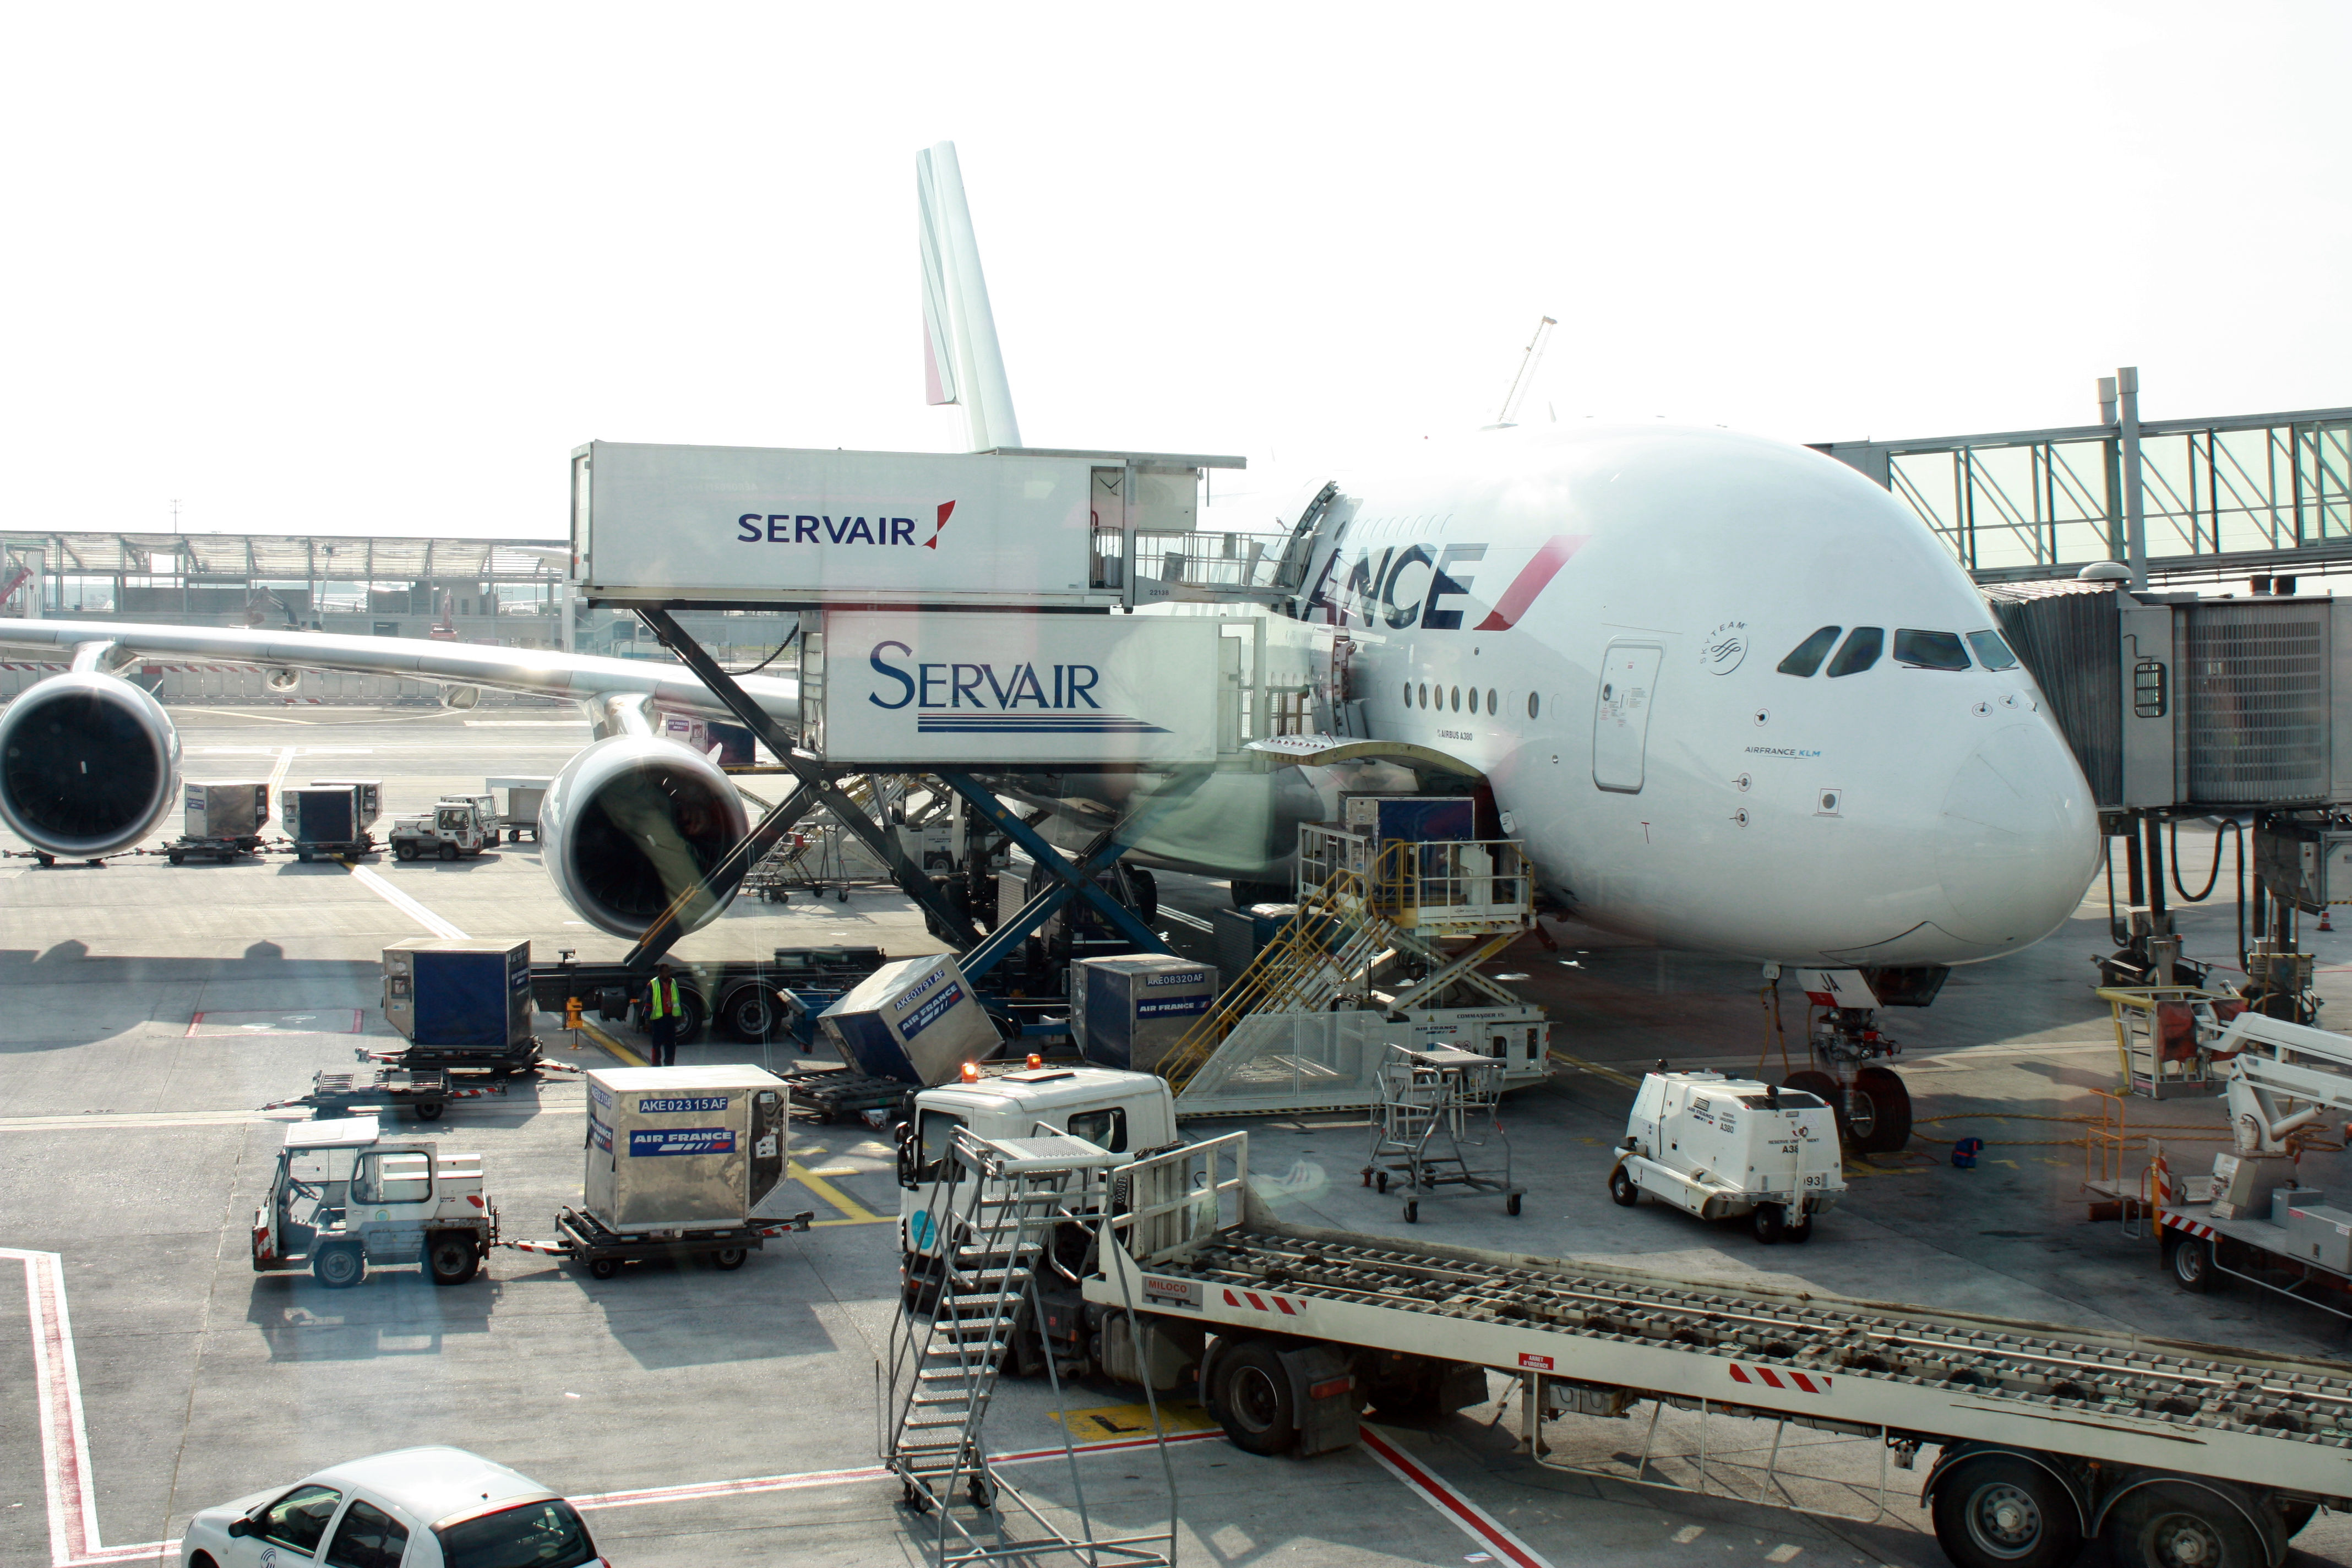 http://upload.wikimedia.org/wikipedia/commons/a/a8/Catering_A380_Air_France_F-HPJC_-_CDG_-_2.jpg